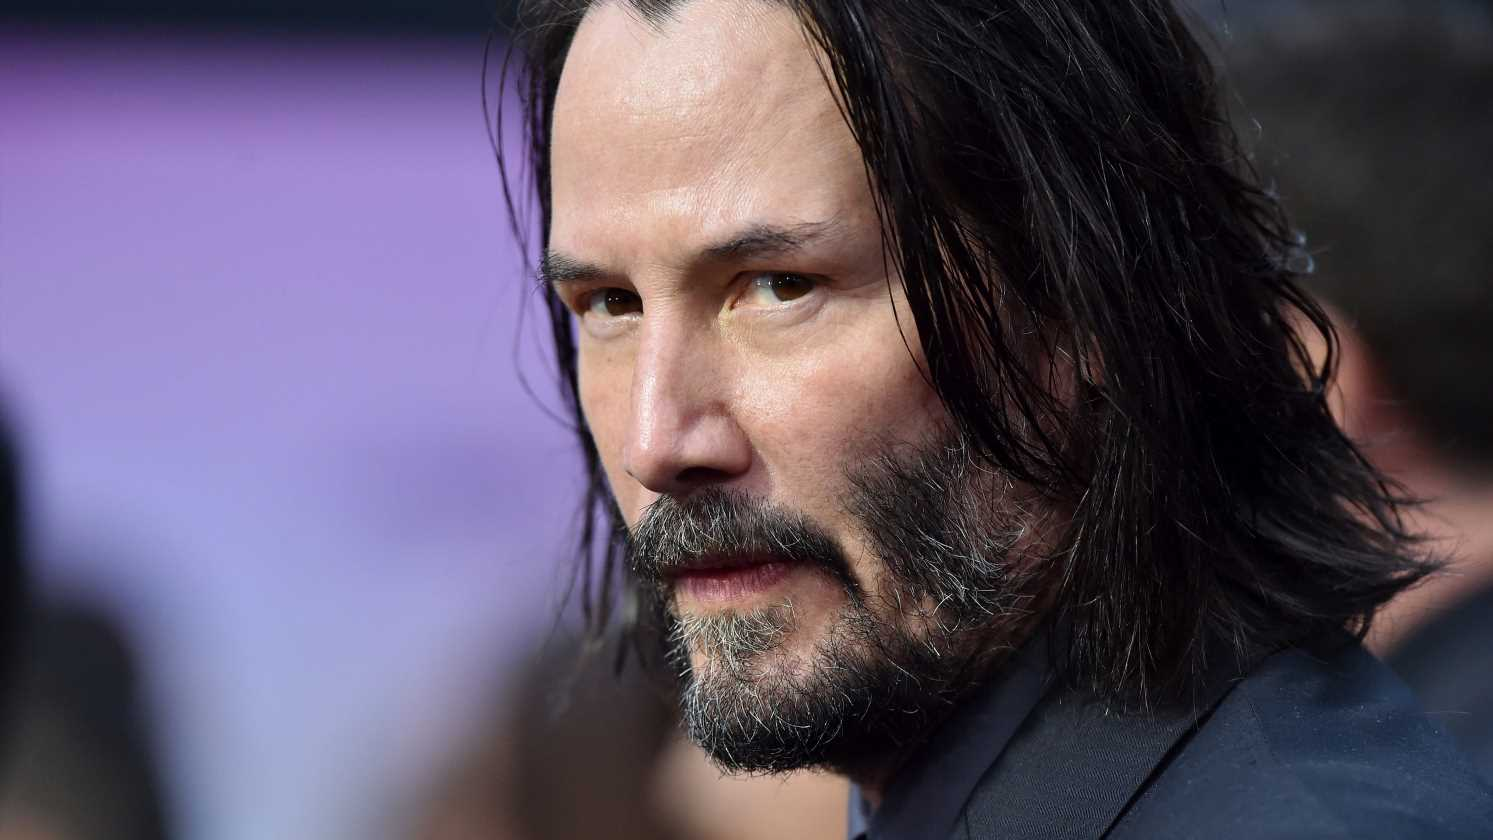 'You're breathtaking': Keanu Reeves pulls another classic Keanu move, surprises fans